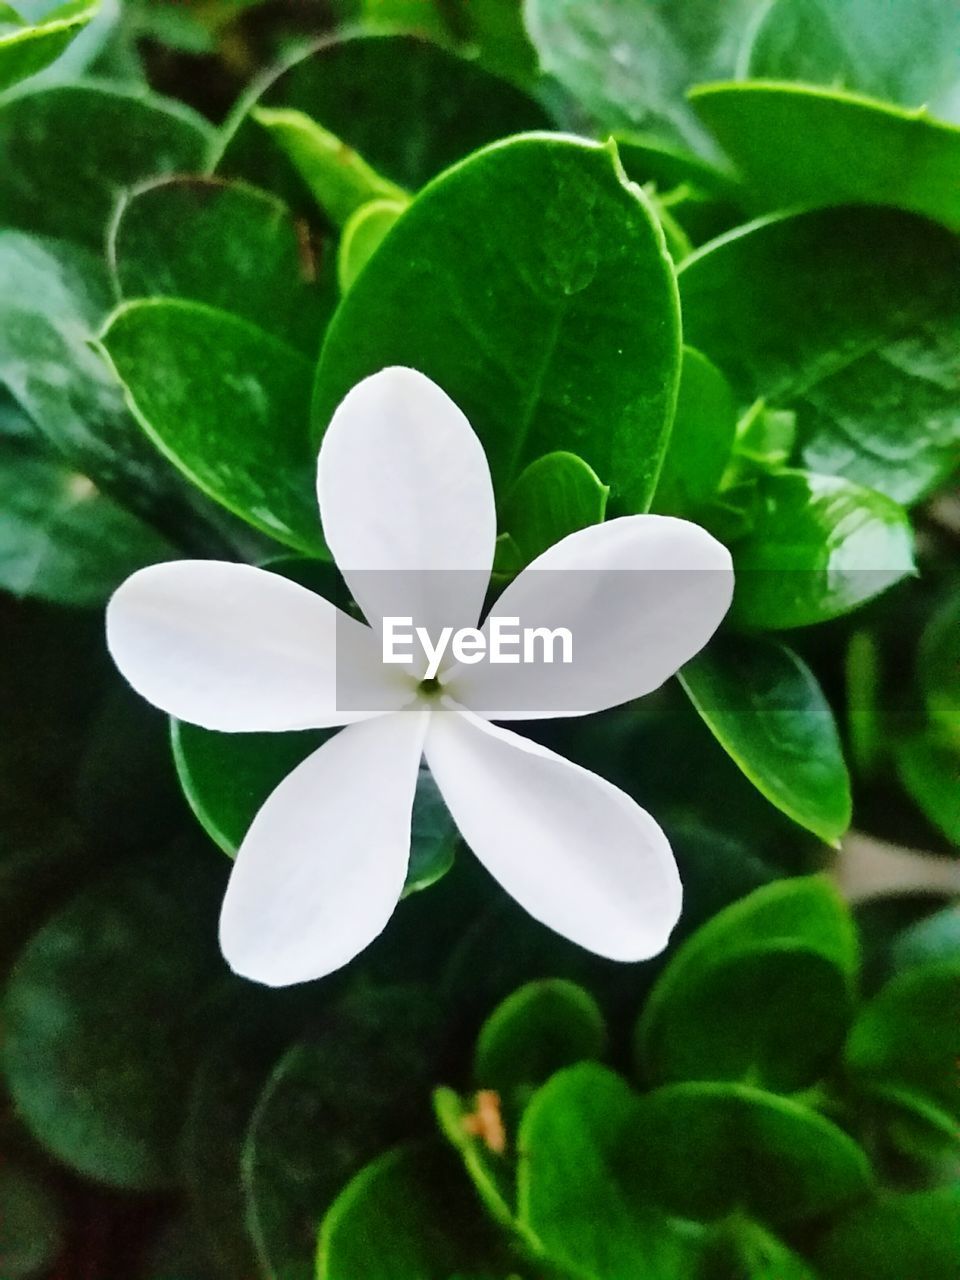 leaf, green color, white color, growth, beauty in nature, nature, plant, flower, periwinkle, close-up, fragility, no people, day, outdoors, frangipani, flower head, freshness